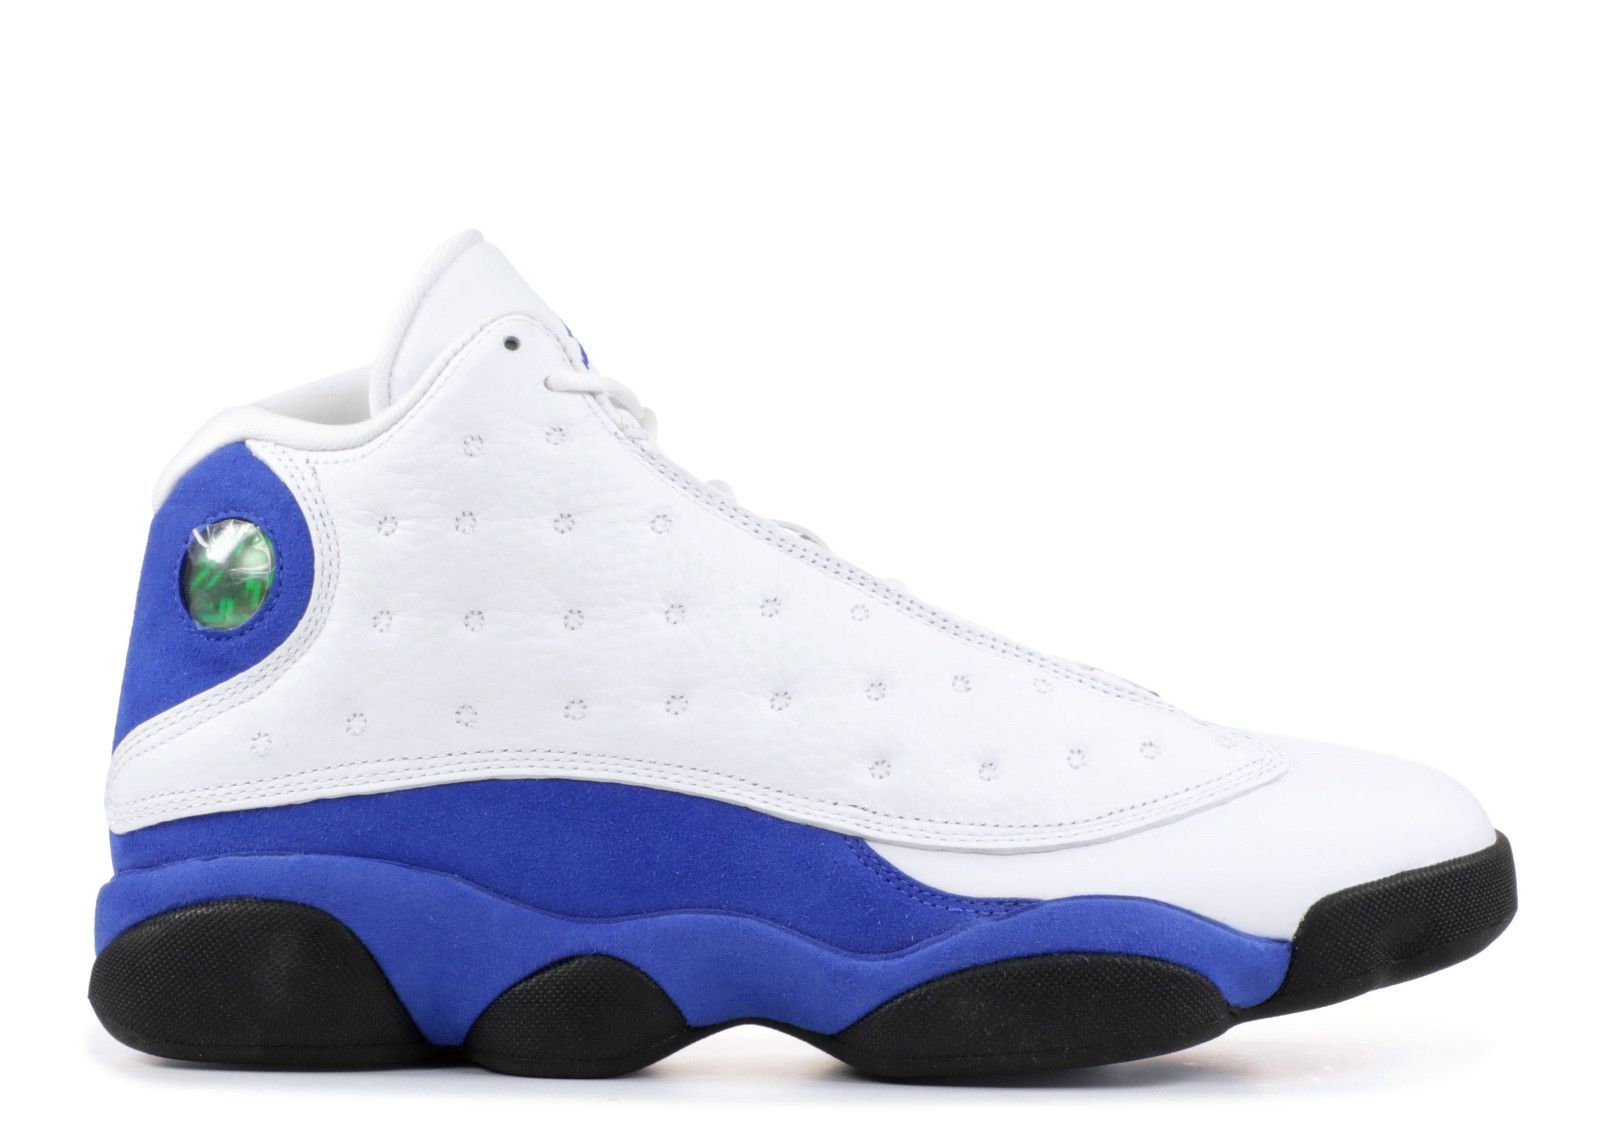 6ff5902a902b06 Air jordan 13 retro